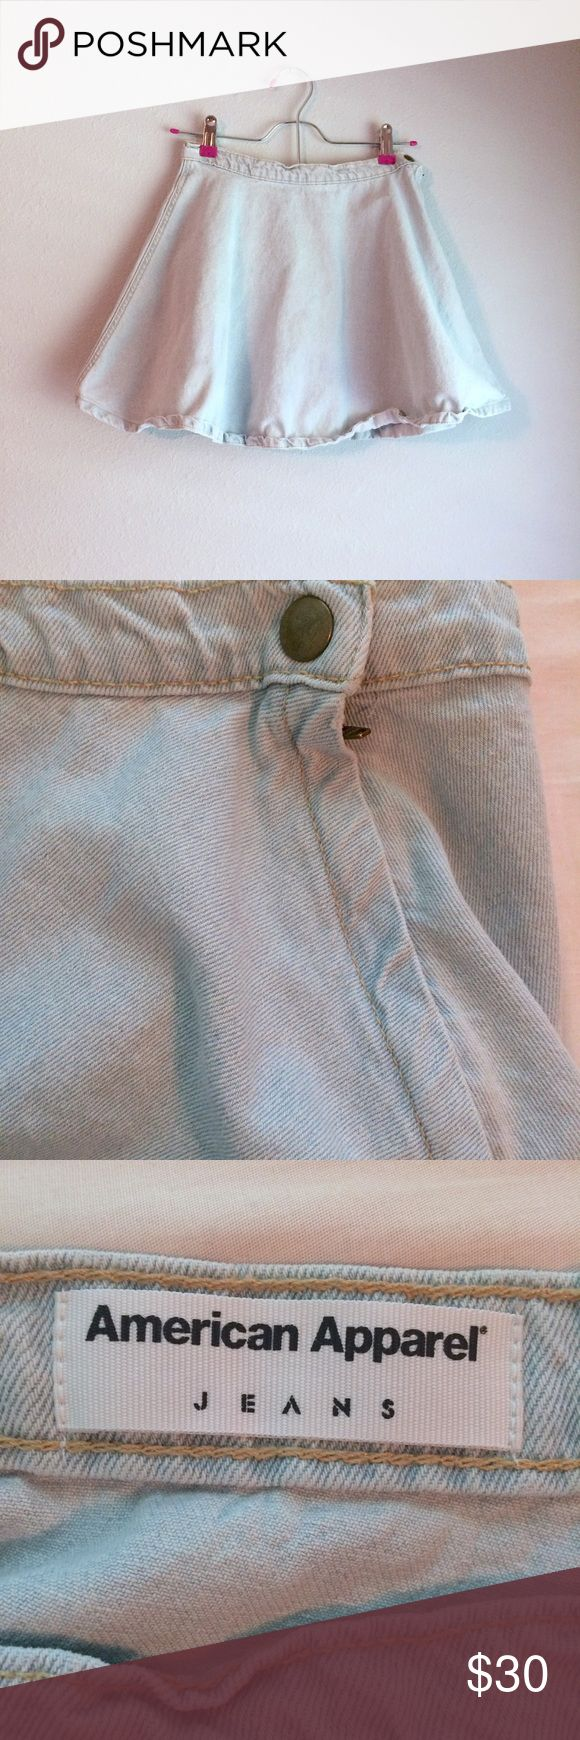 American Apparel Denim Skater Skirt Very thick Denim material. High waisted and quite short. Only flaw is the fold over on the Hem from wash. American Apparel Skirts Circle & Skater